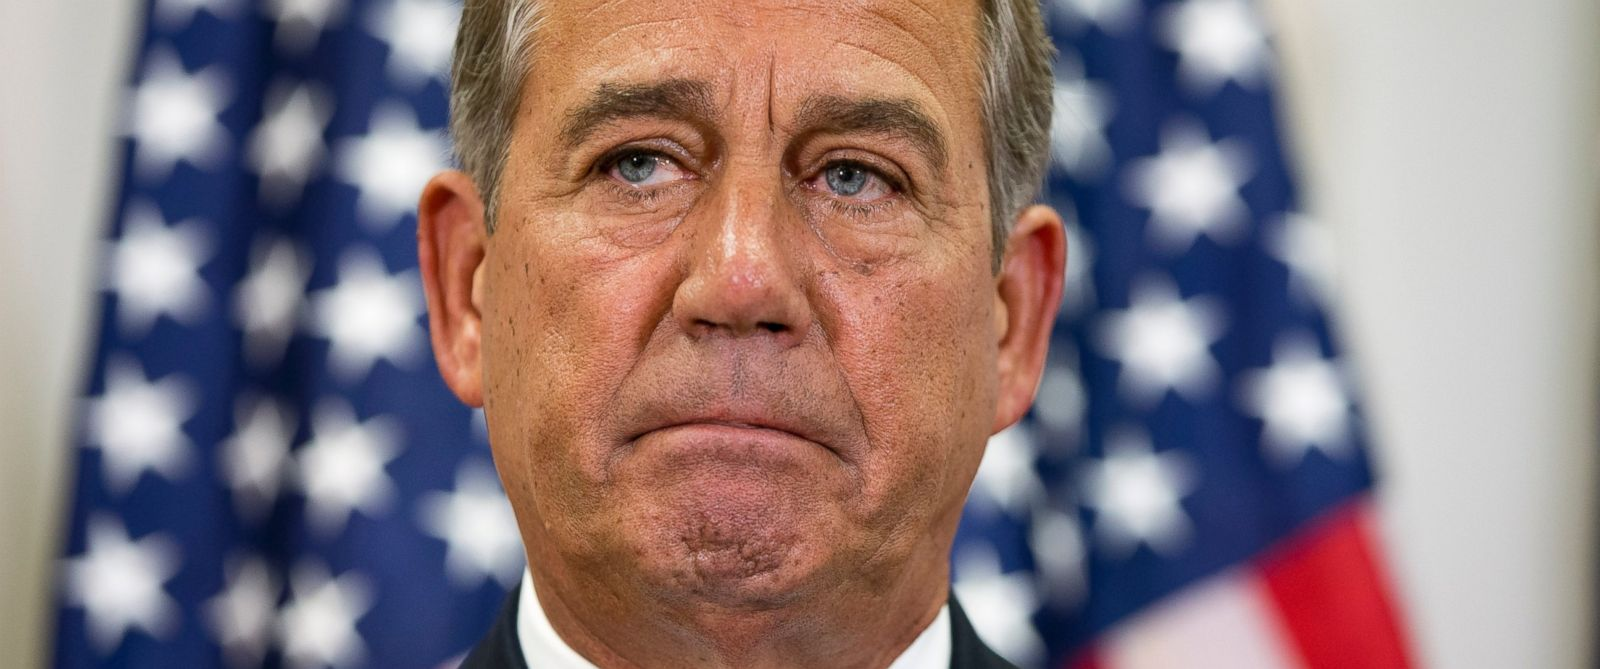 PHOTO: John Boehner pauses during a news conference with members of the House Republican leadership on Capitol Hill in Washington., Sept. 9, 2015.